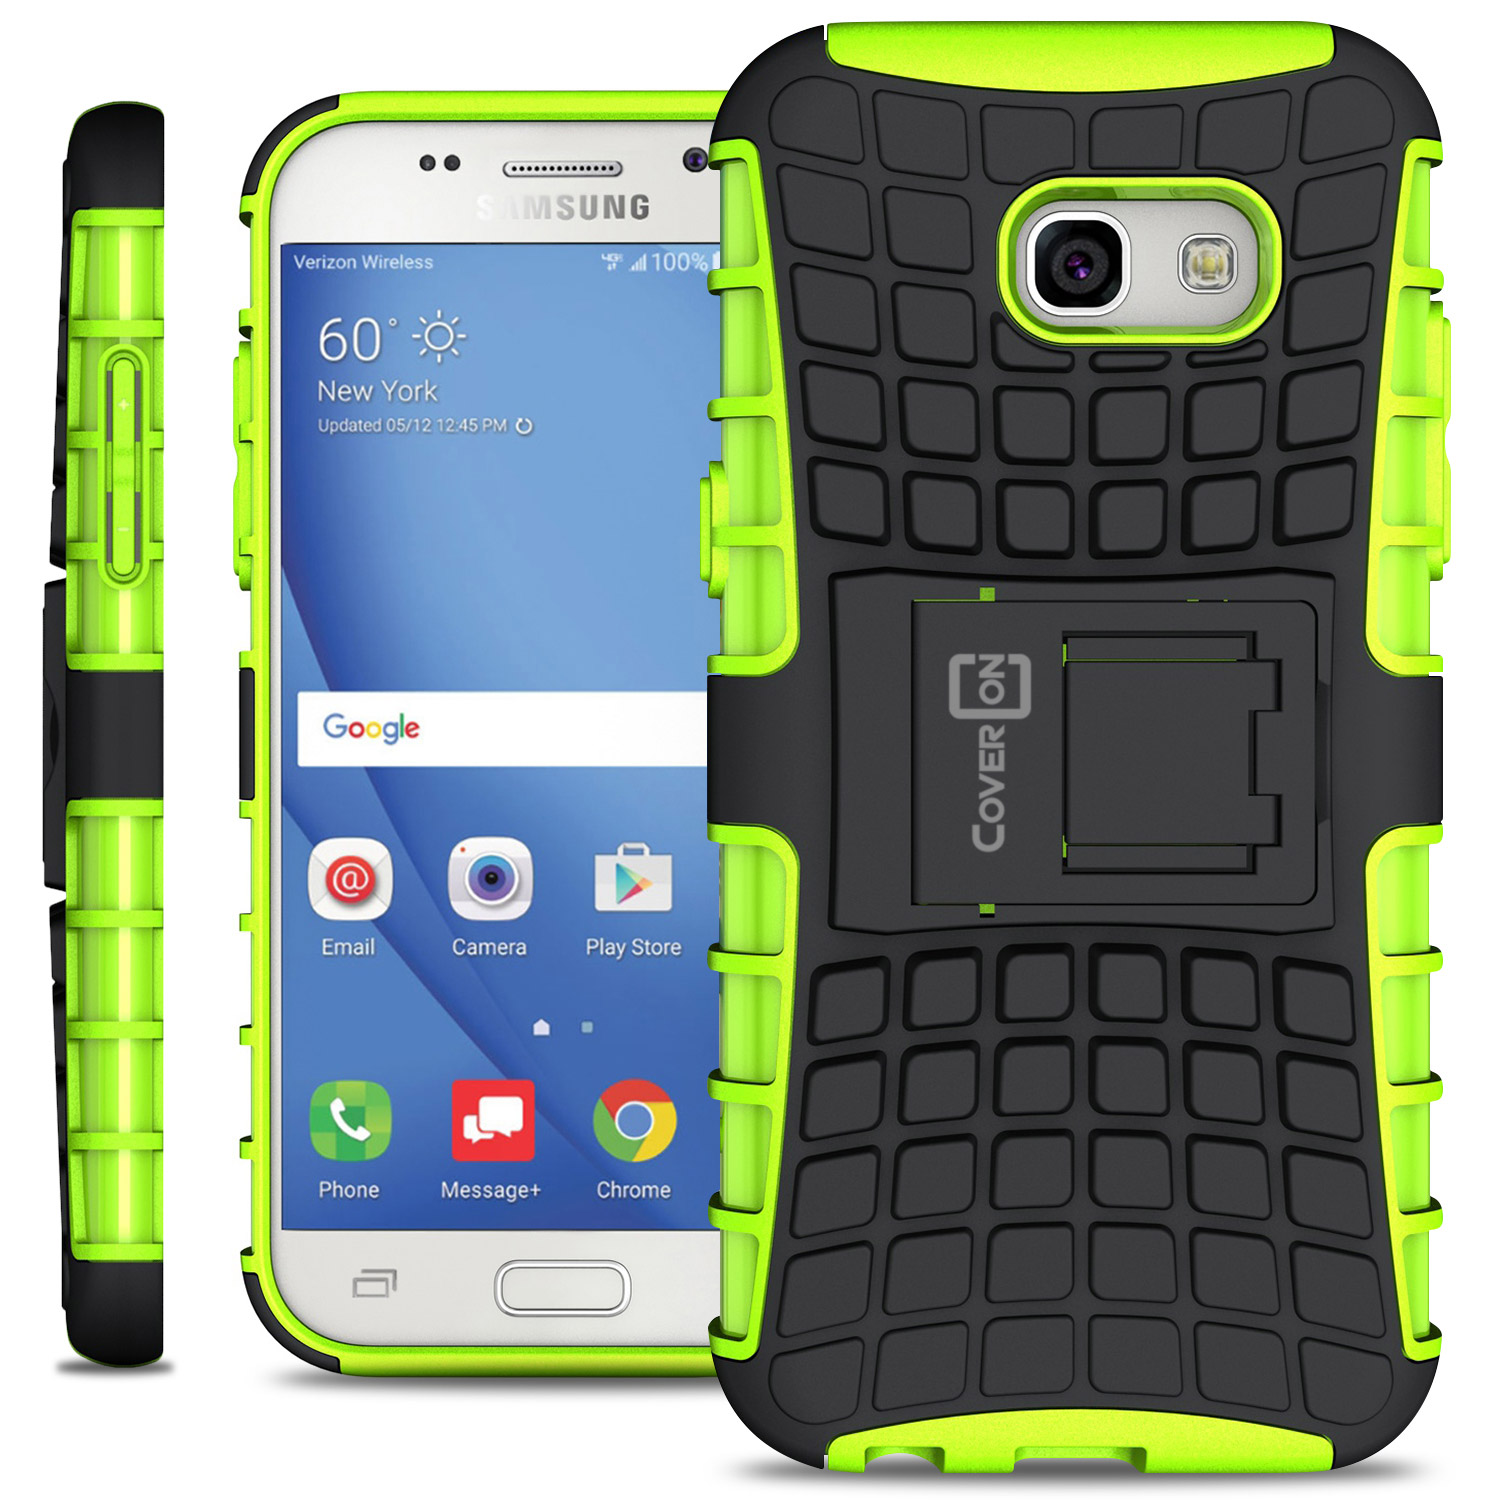 Gallery of Samsung A5 2017 A520 Casing Cover Hp Rugged Armor 2ddjbax